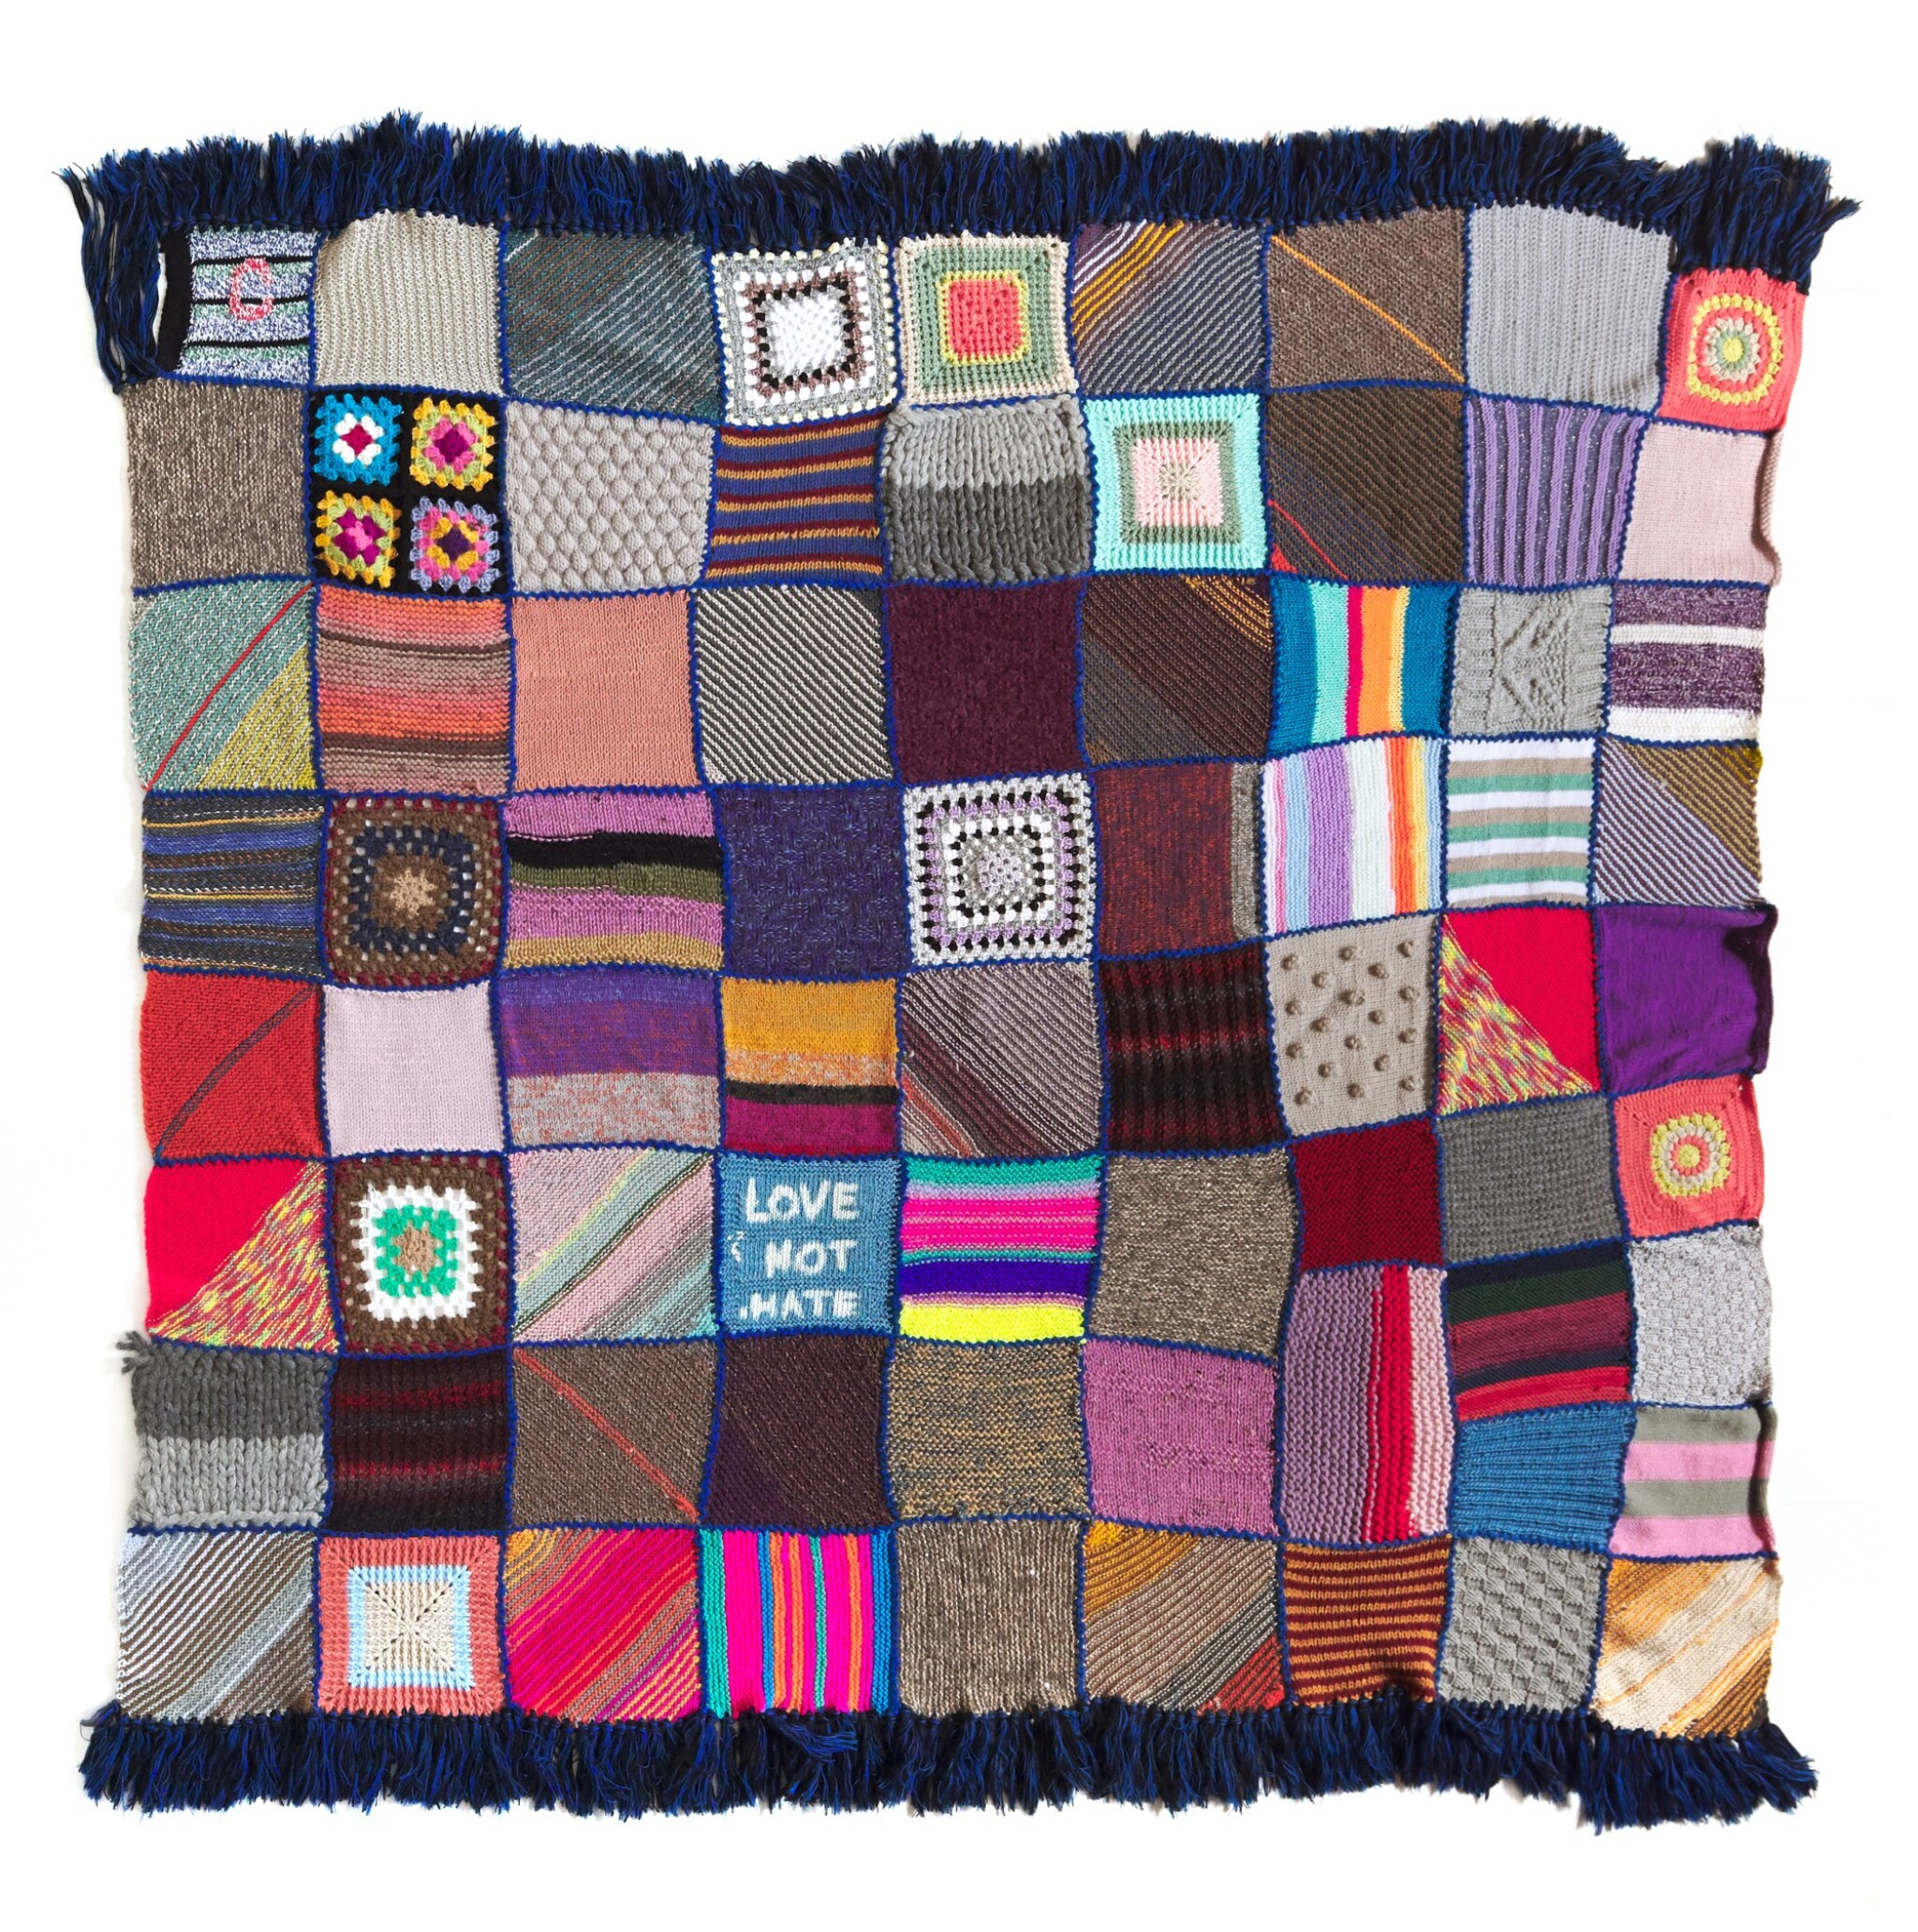 View full screen - View 1 of Lot 84. Untitled (Colville's Calling all Knitters! campaign).